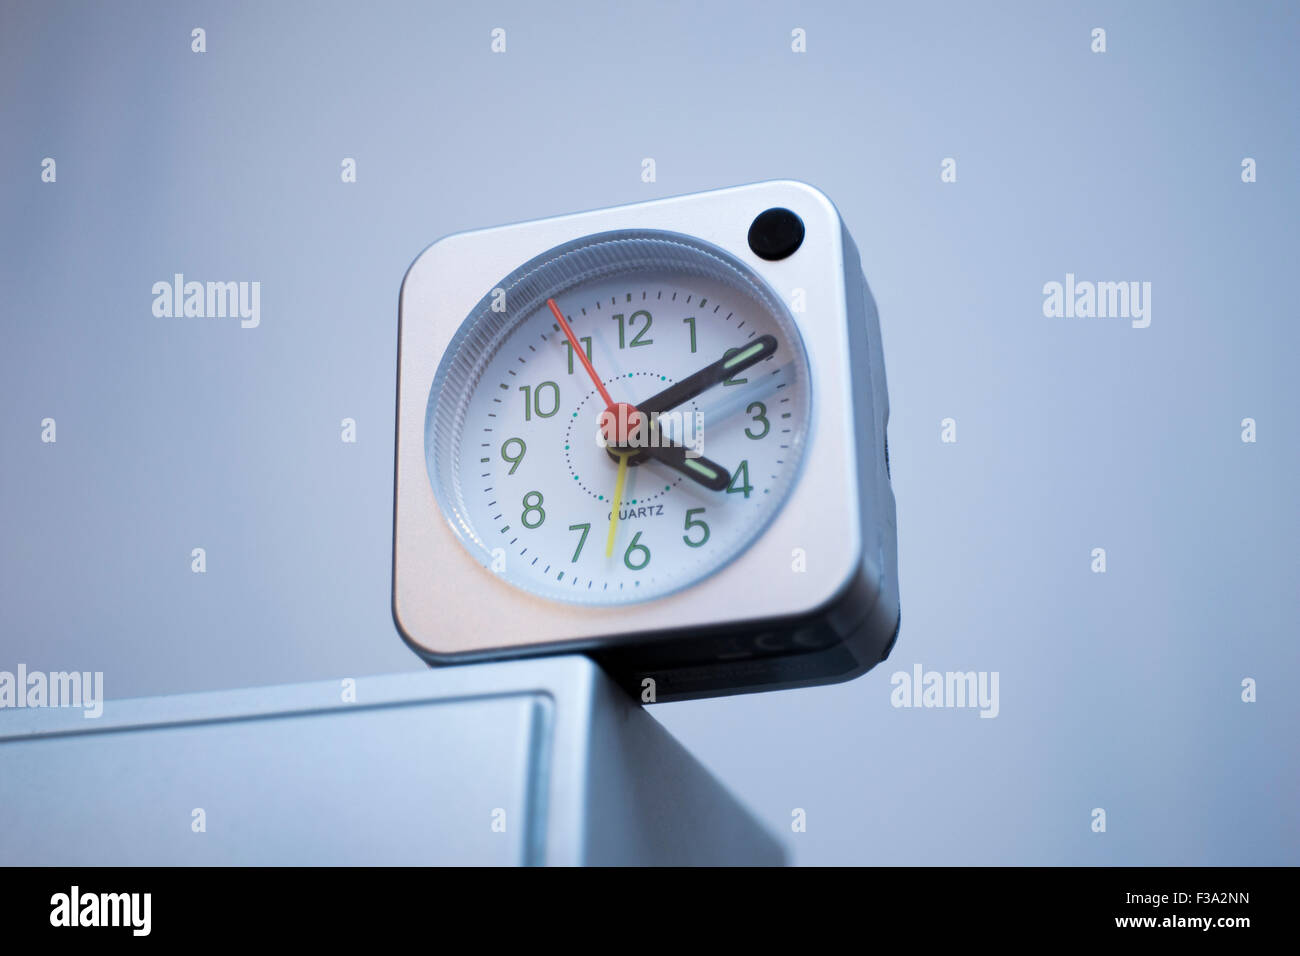 square clock on the edge running out of time - Stock Image